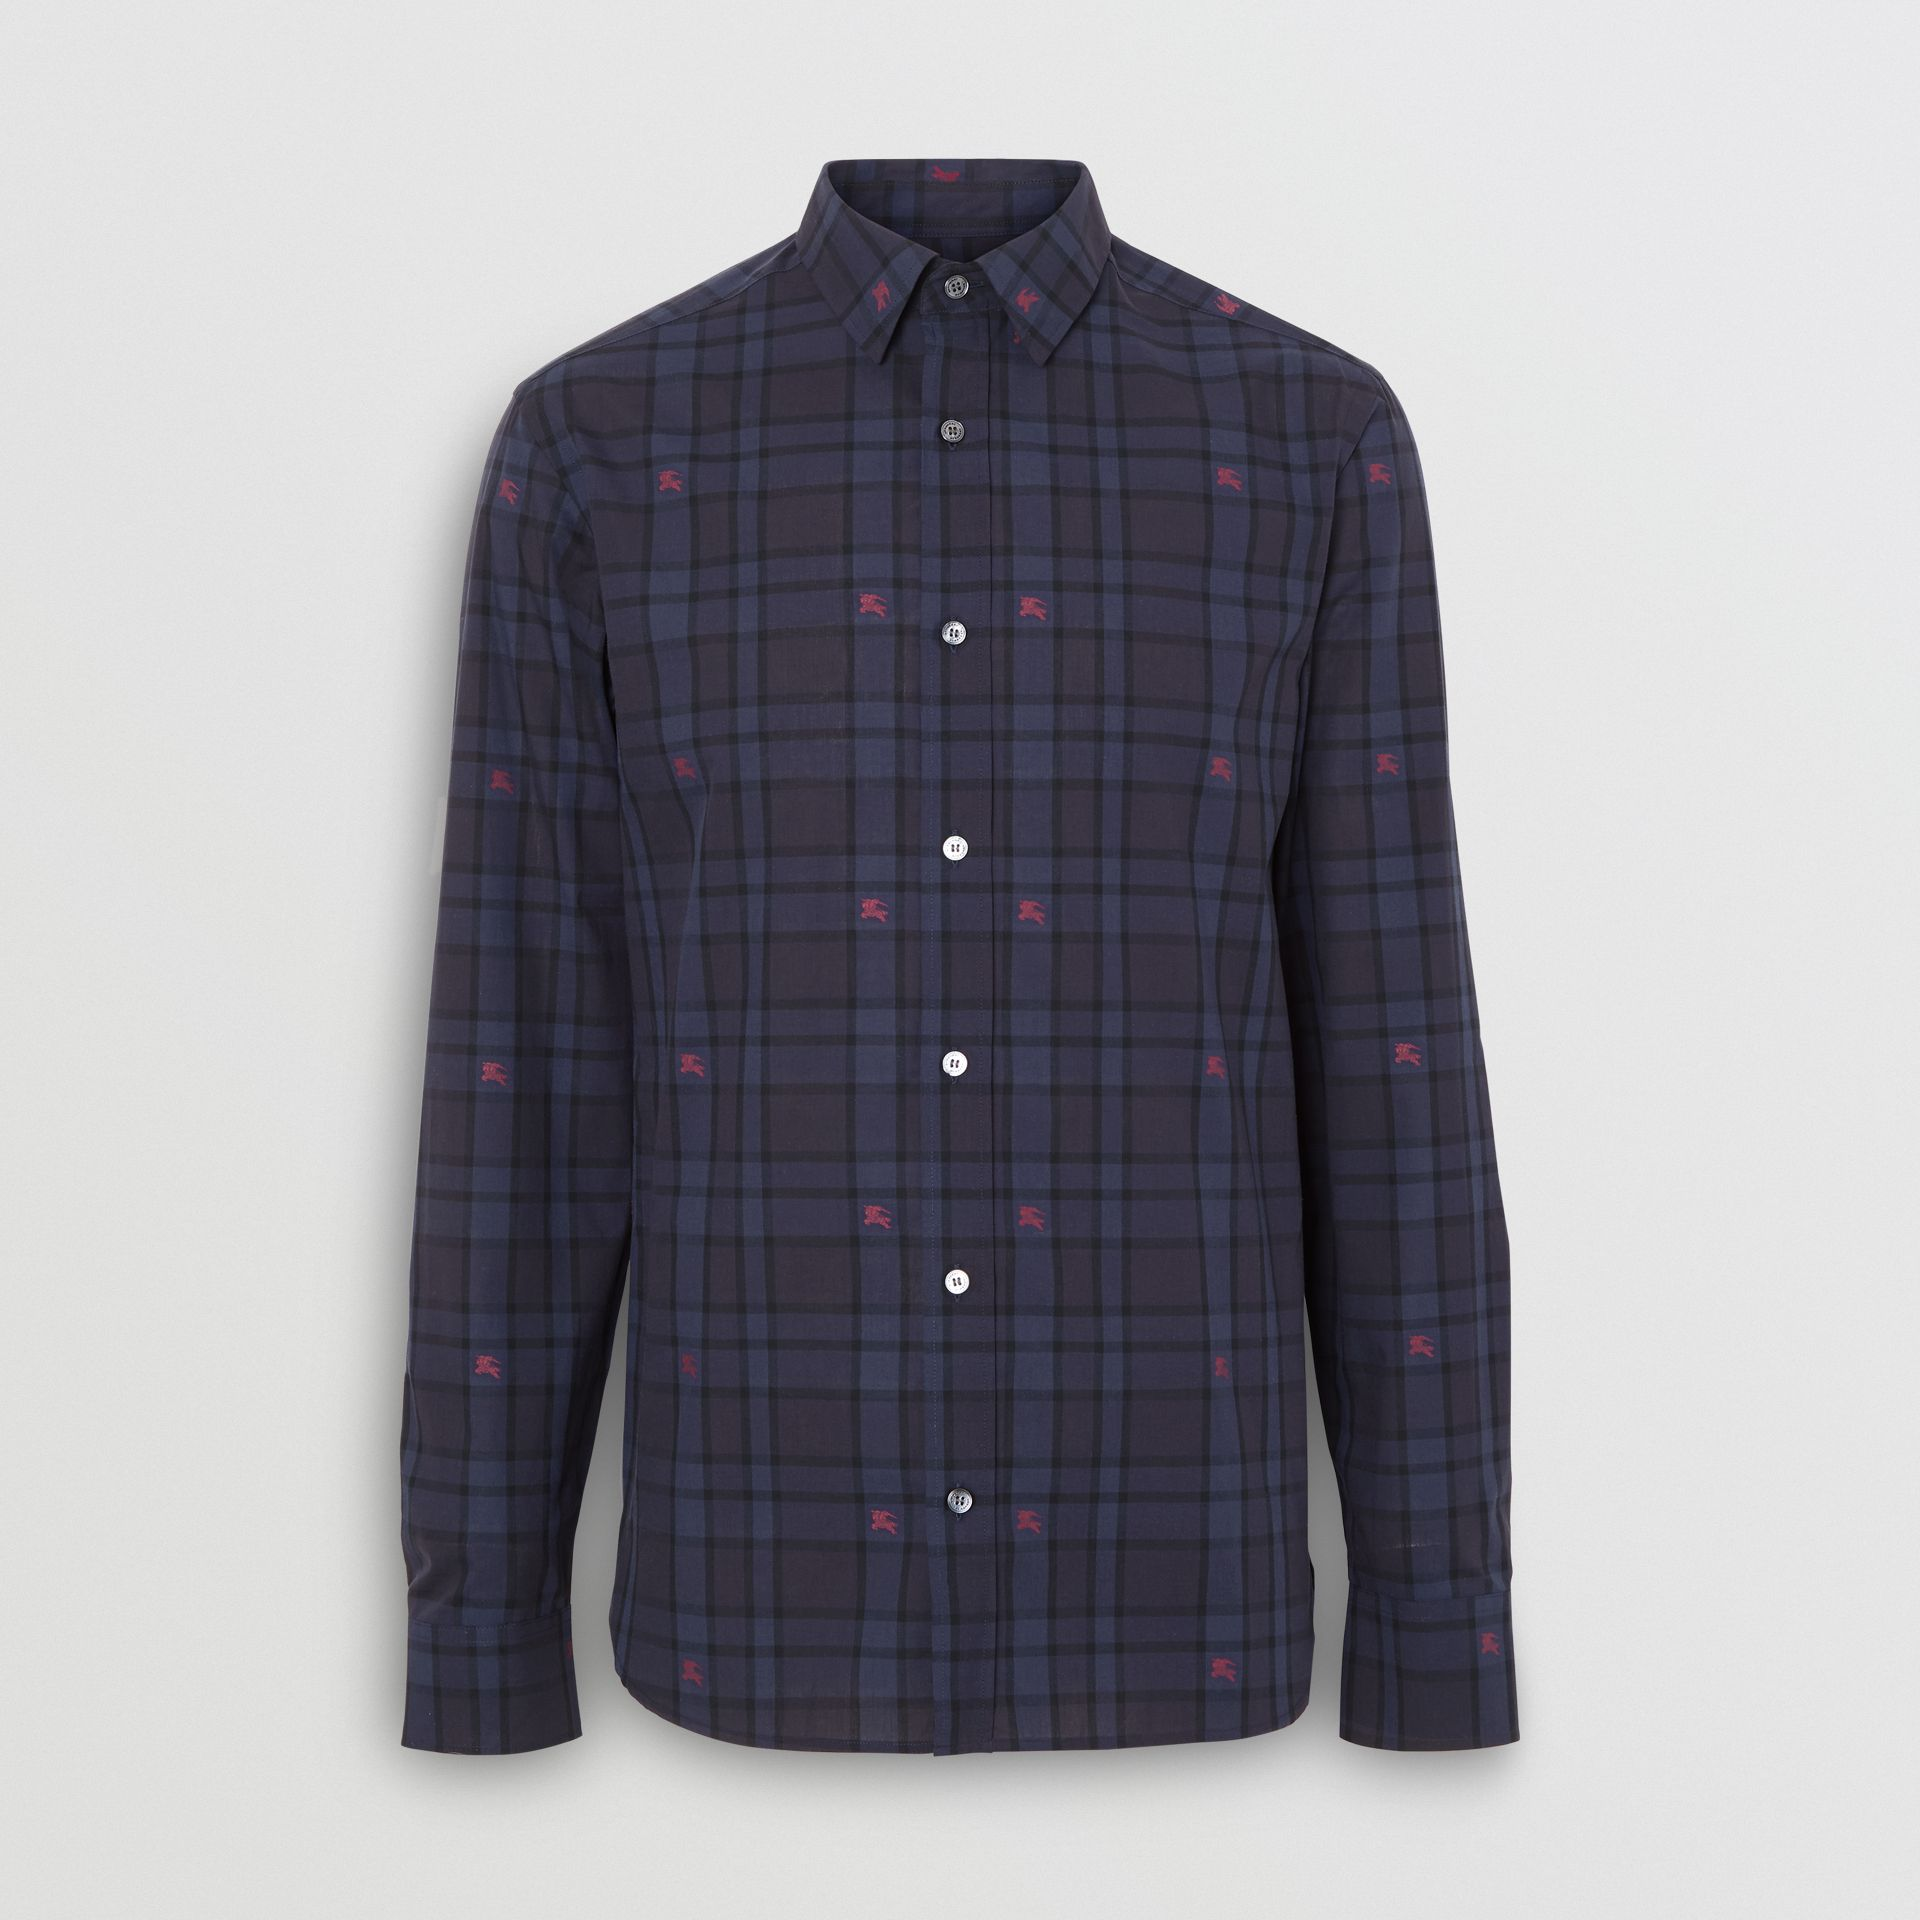 Equestrian Knight Check Cotton Shirt in Dark Indigo - Men | Burberry Canada - gallery image 3